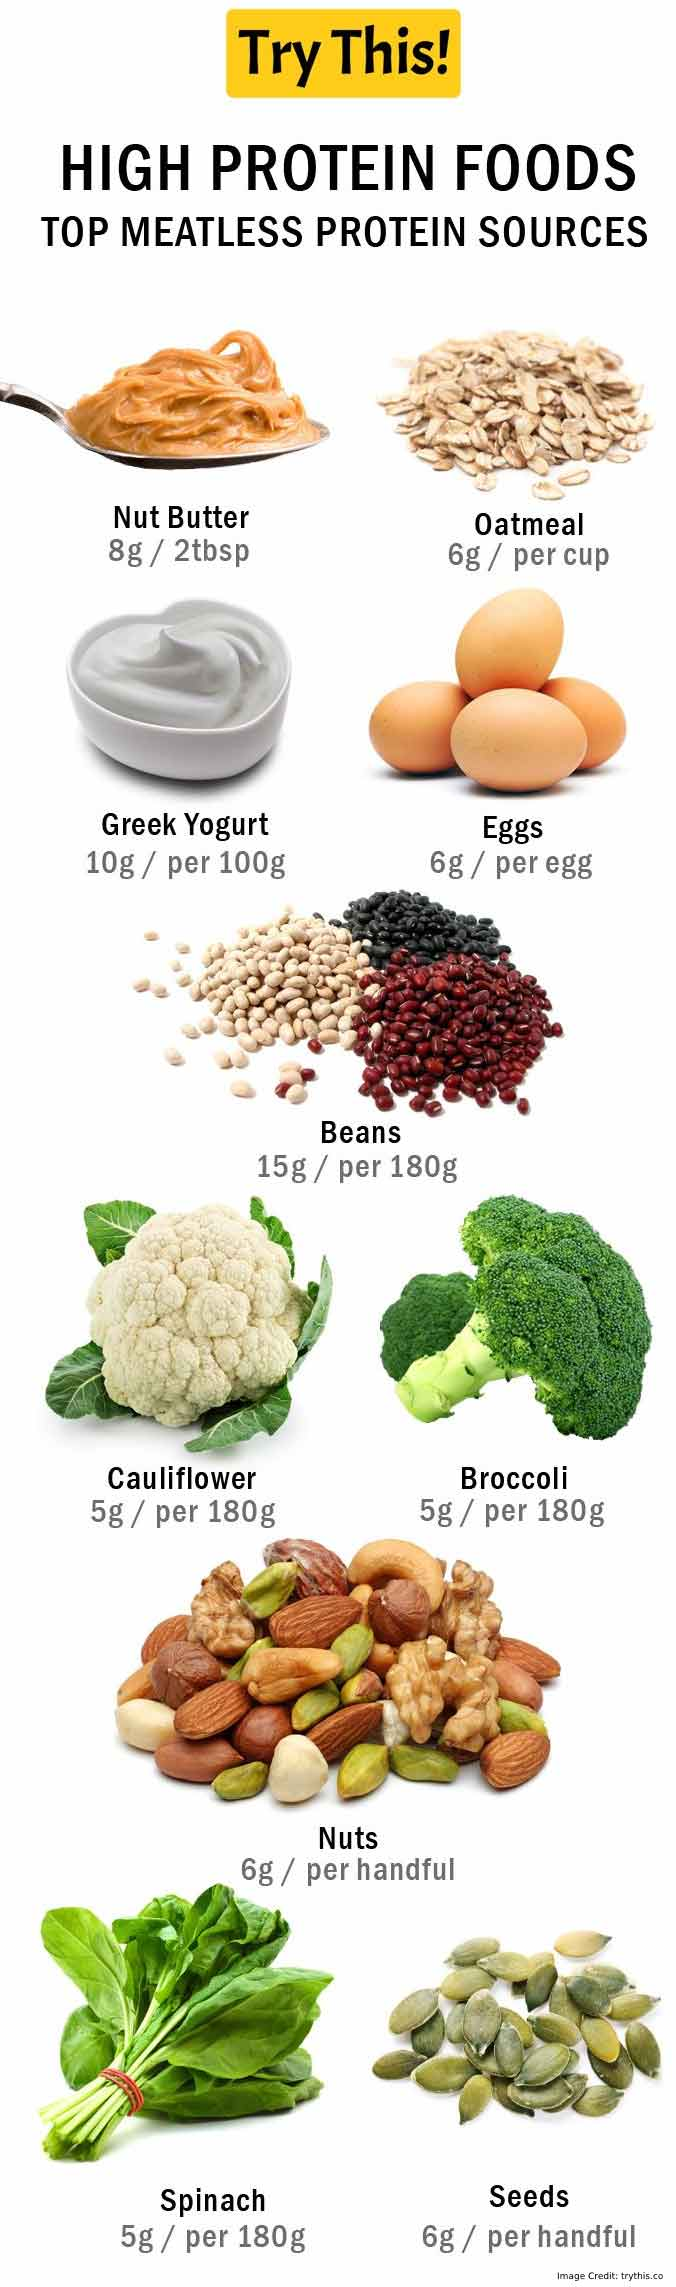 High Protein Food Info